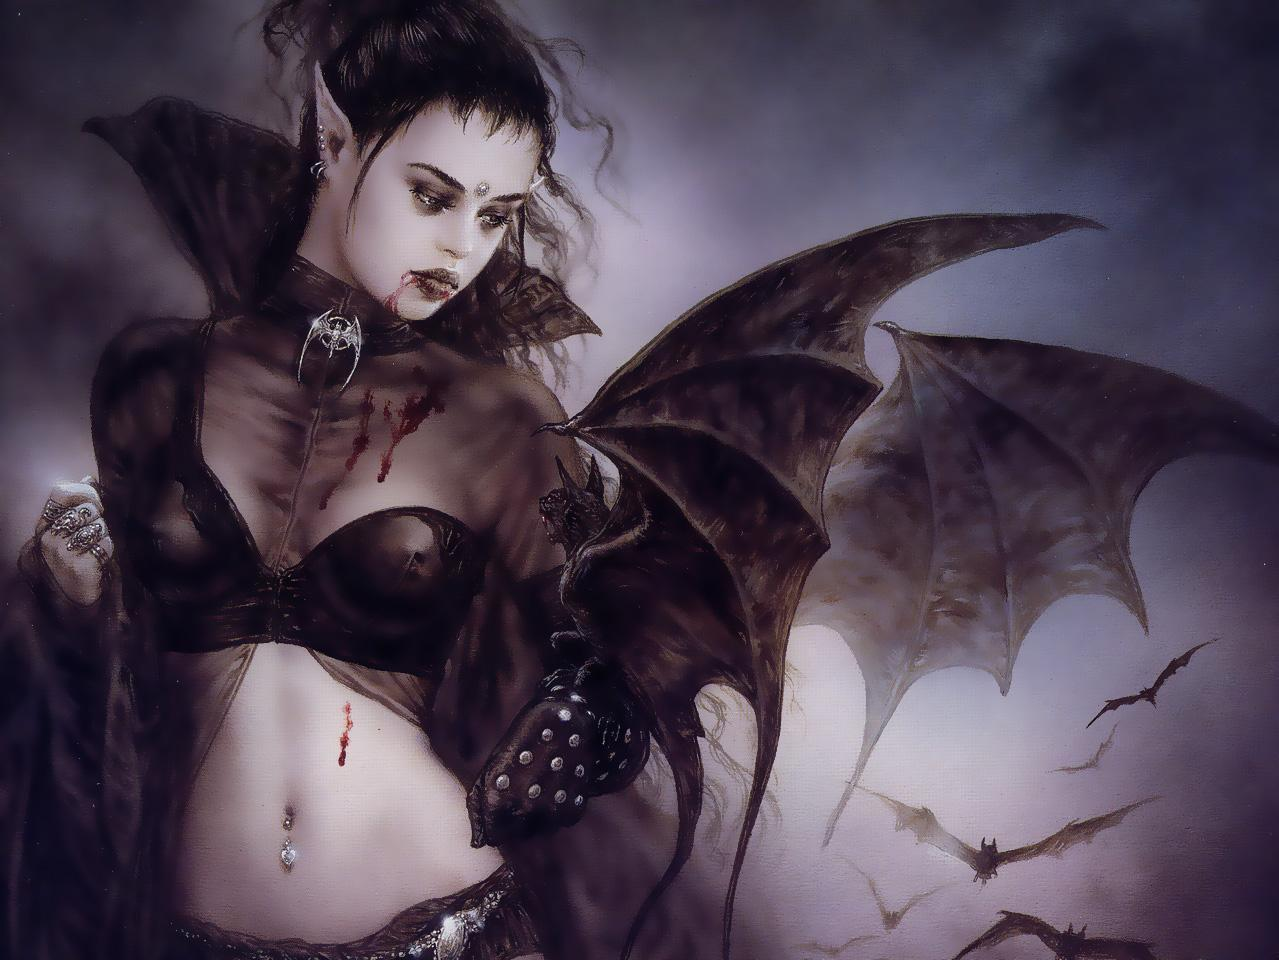 Dioses Anzus  Vampire-Wallpapers-by-Luis-Royo-vampires-13944346-1279-960